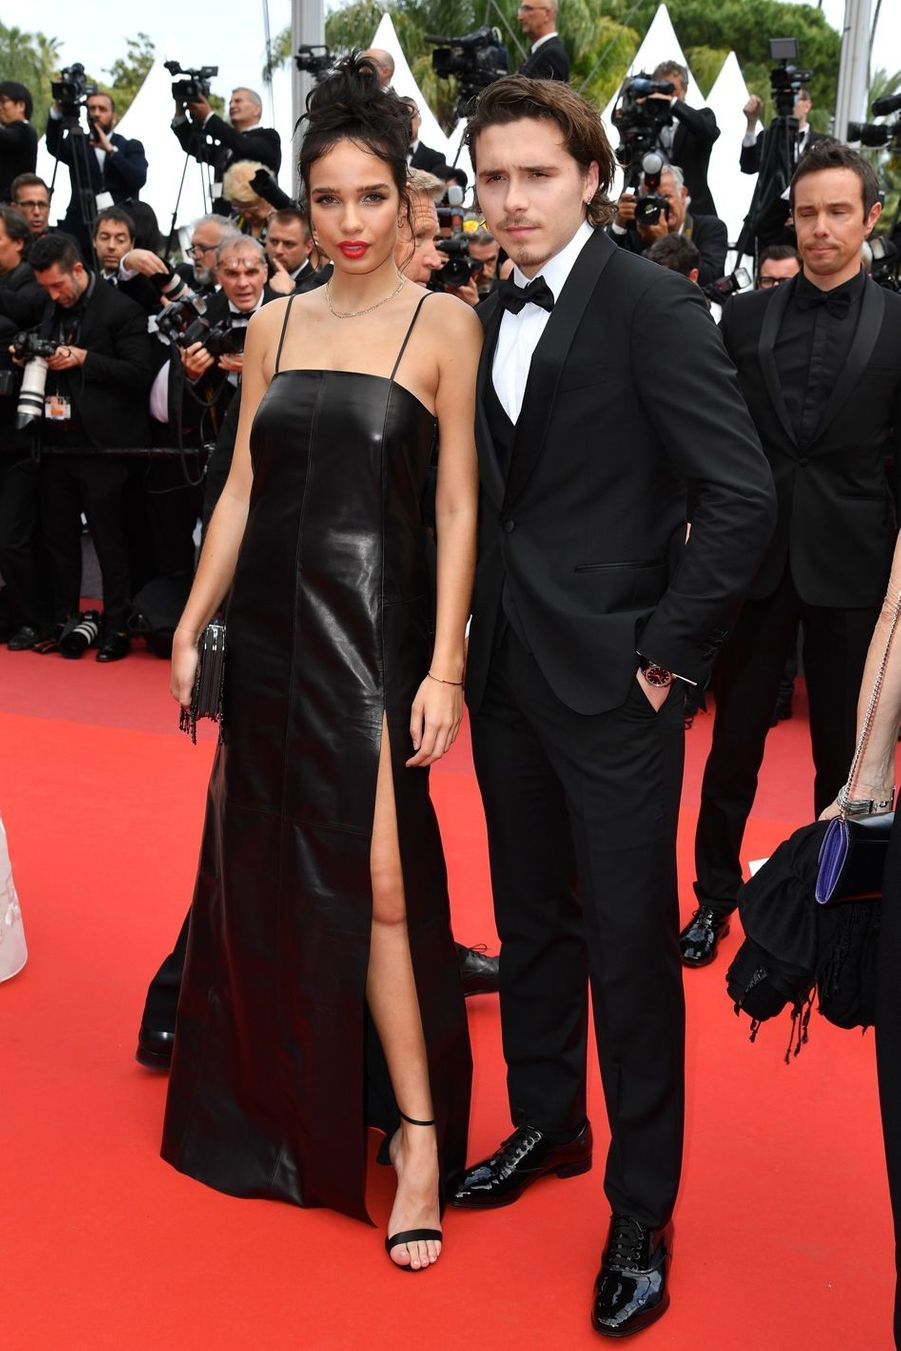 Hana Cross et Brooklyn Beckham lors de la montée des marches du film «Once Upon A Time In Hollywood» à Cannes le 21 mai 2019